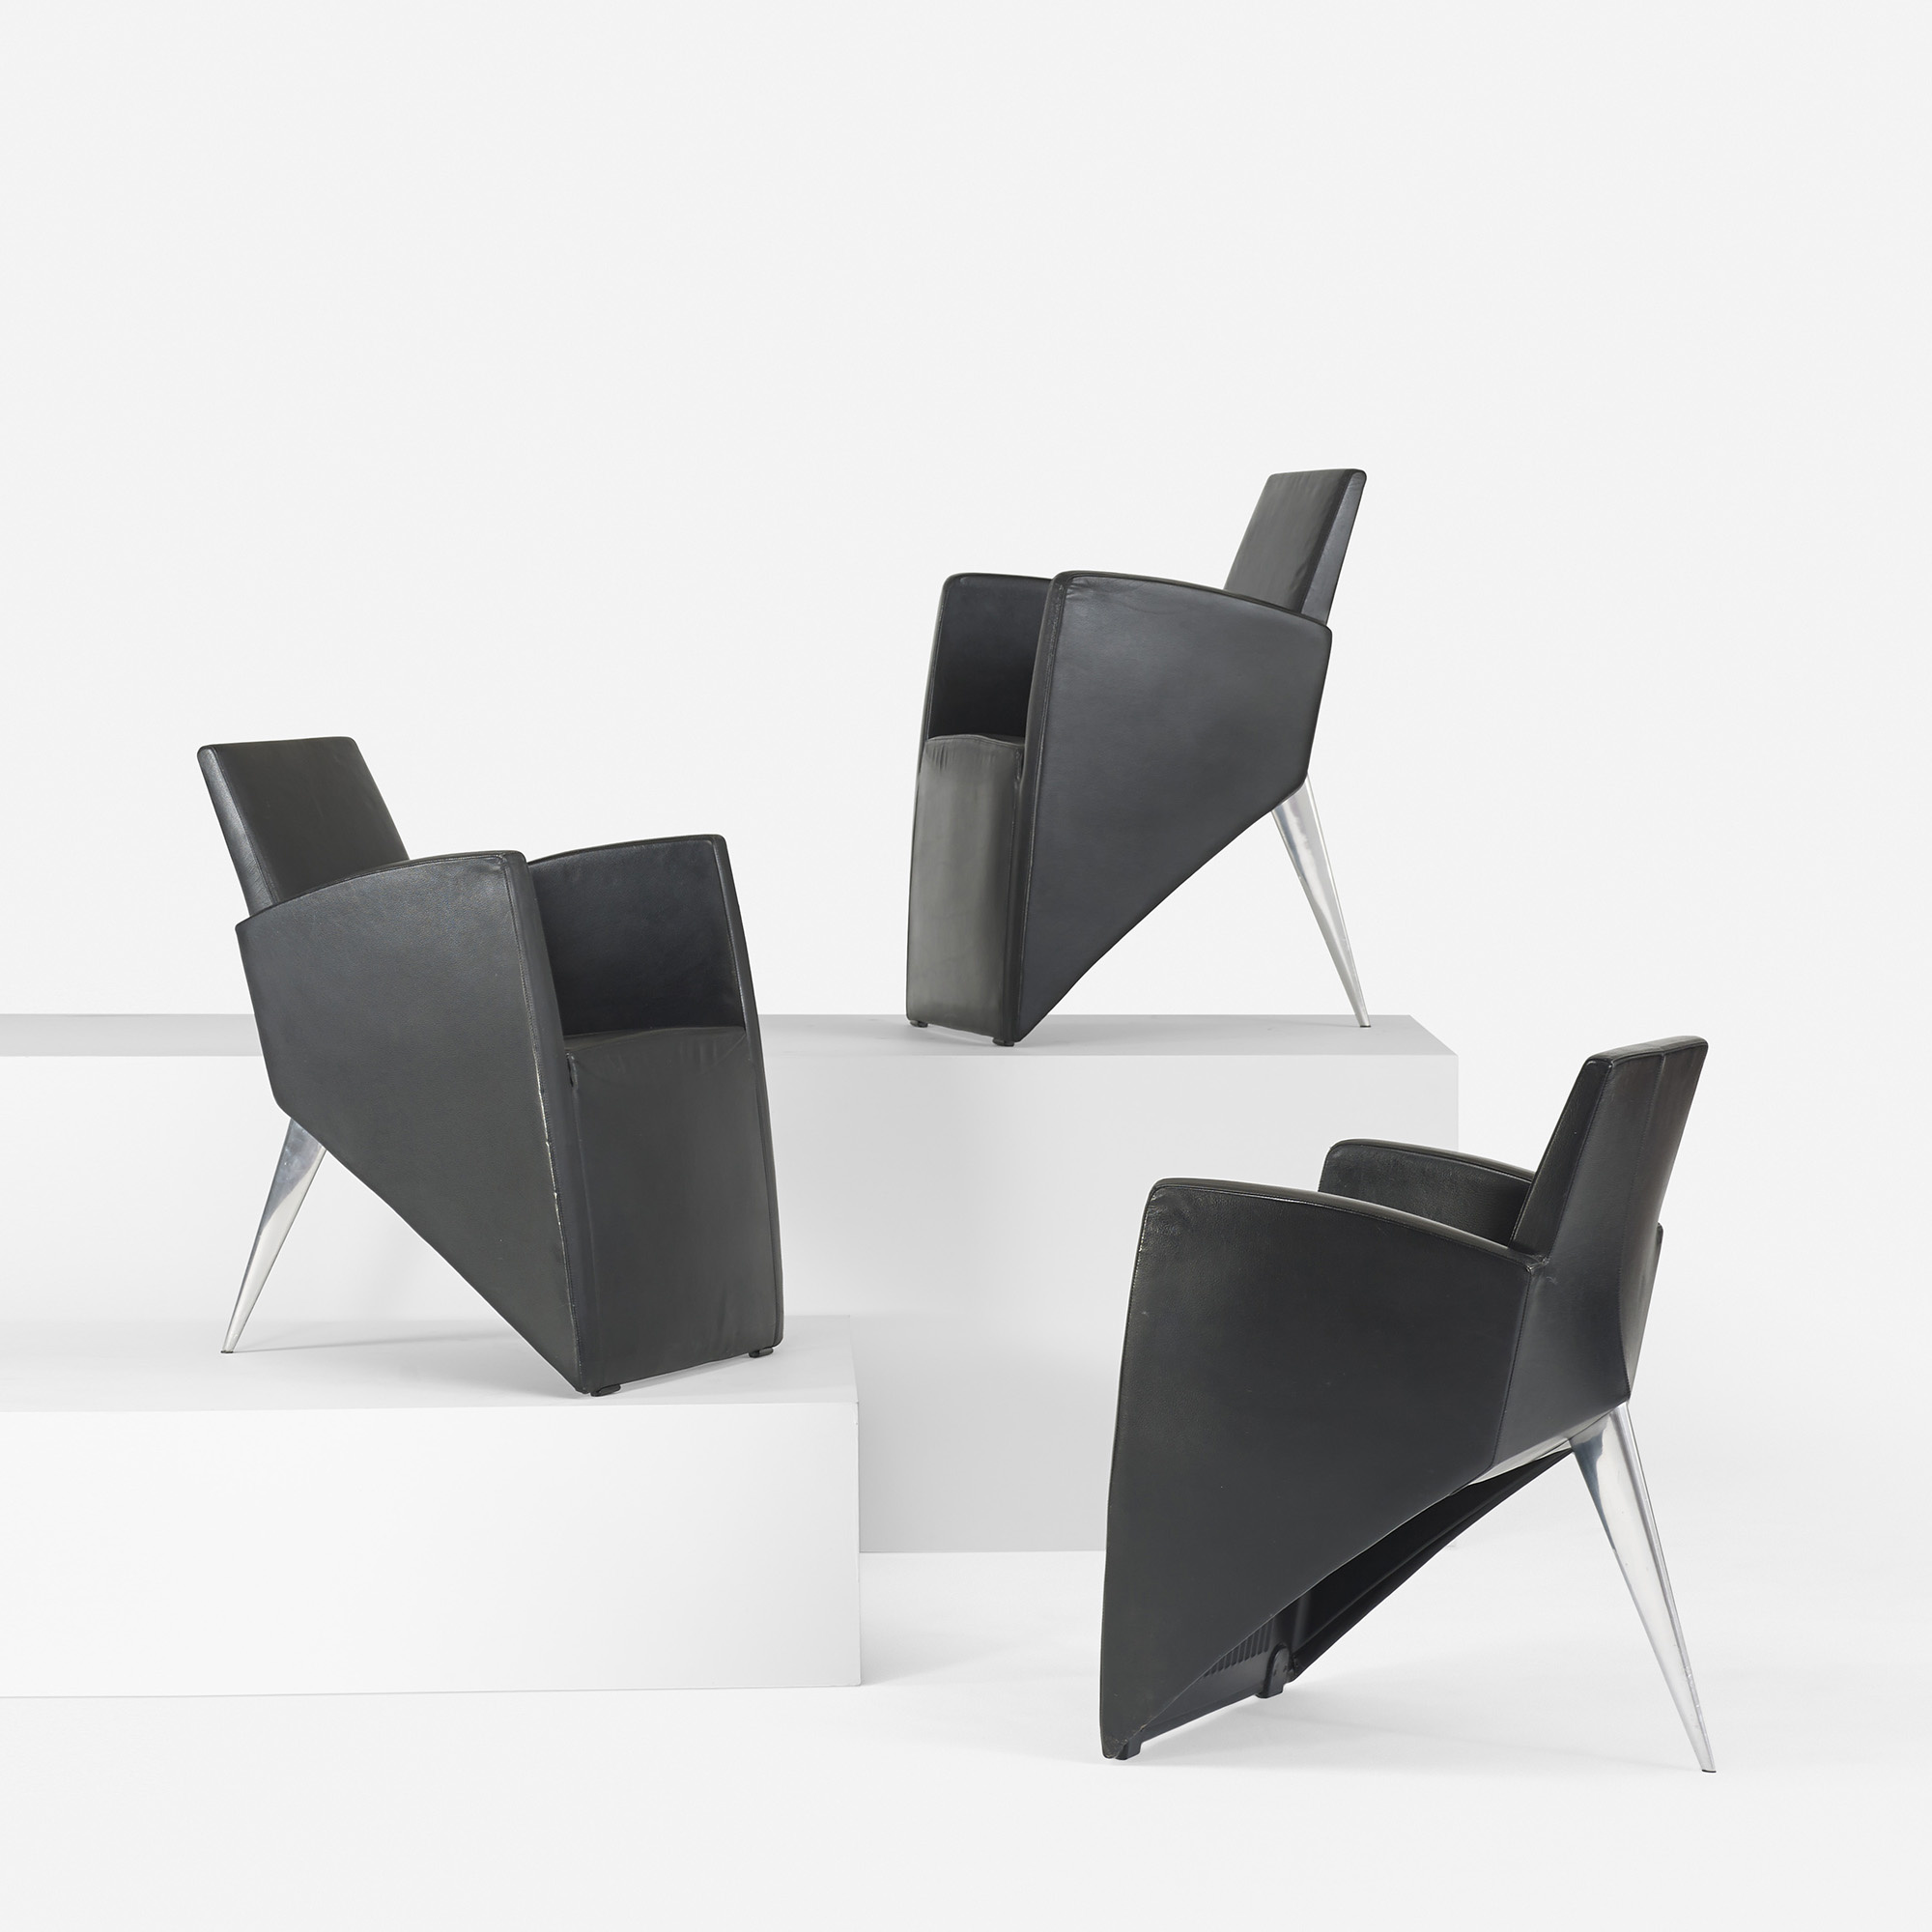 361 philippe starck j serie lang lounge chairs set of six. Black Bedroom Furniture Sets. Home Design Ideas